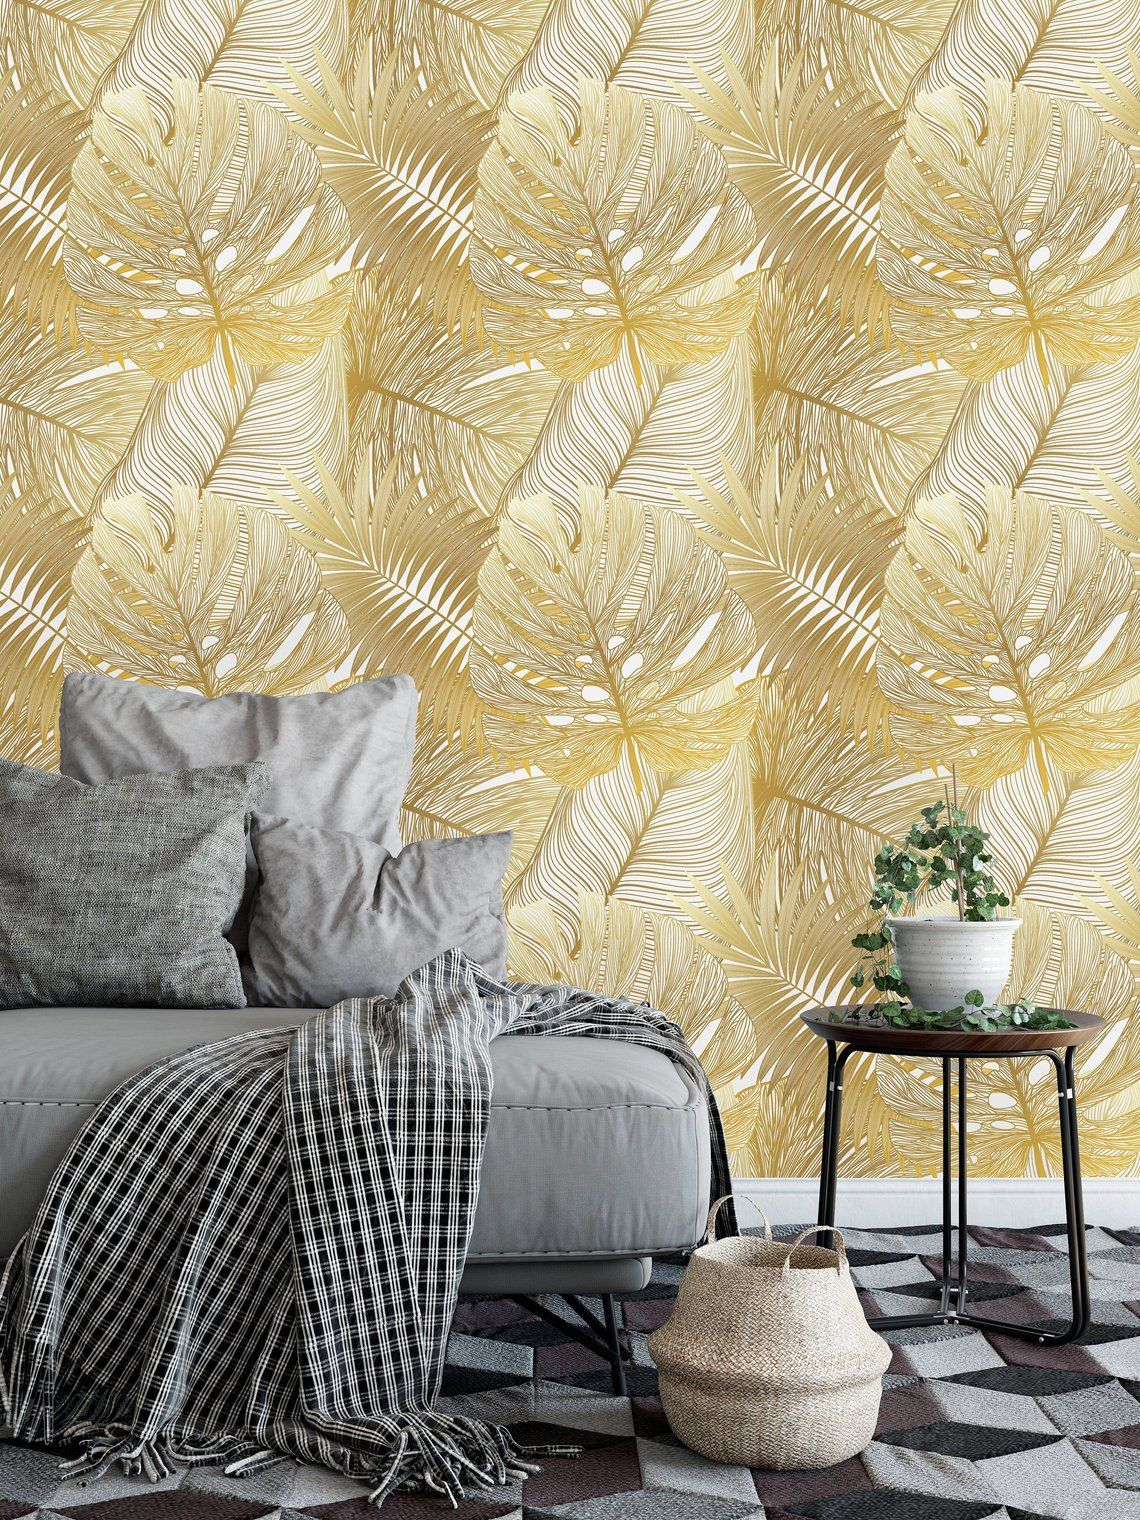 Gold Tropical Leaves Removable WallpaperPeel and Stick